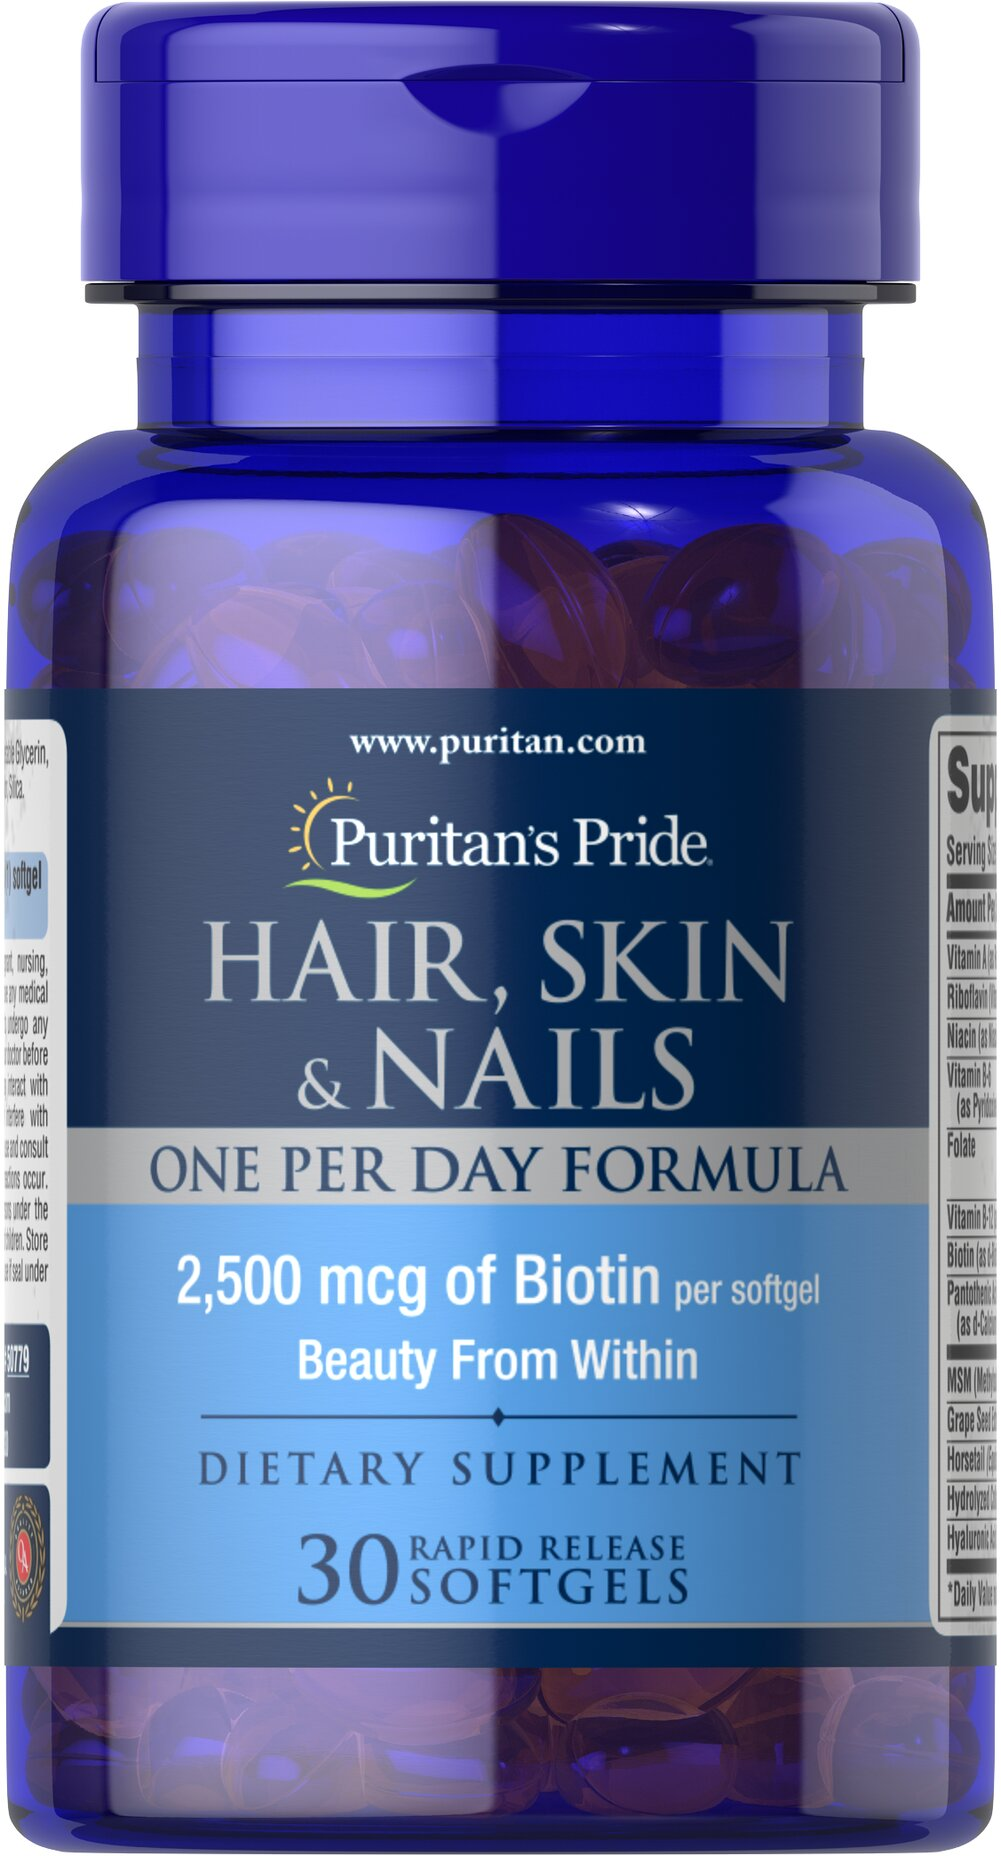 Hair, Skin & Nails One Per Day Formula <p><span></span>2,500mcg of Biotin per softgel.</p><p><span></span>One-per-day formula for hair, skin and nails.**</p><p><span></span>Rapid release softgels.</p><p>Use our Hair, Skin & Nails One Per Day Formula to strengthen and fortify.** This vitamin supplement contains many different beneficial vitamins, including Biotin, Vitamin A, Folic Acid and MSM, providing bea